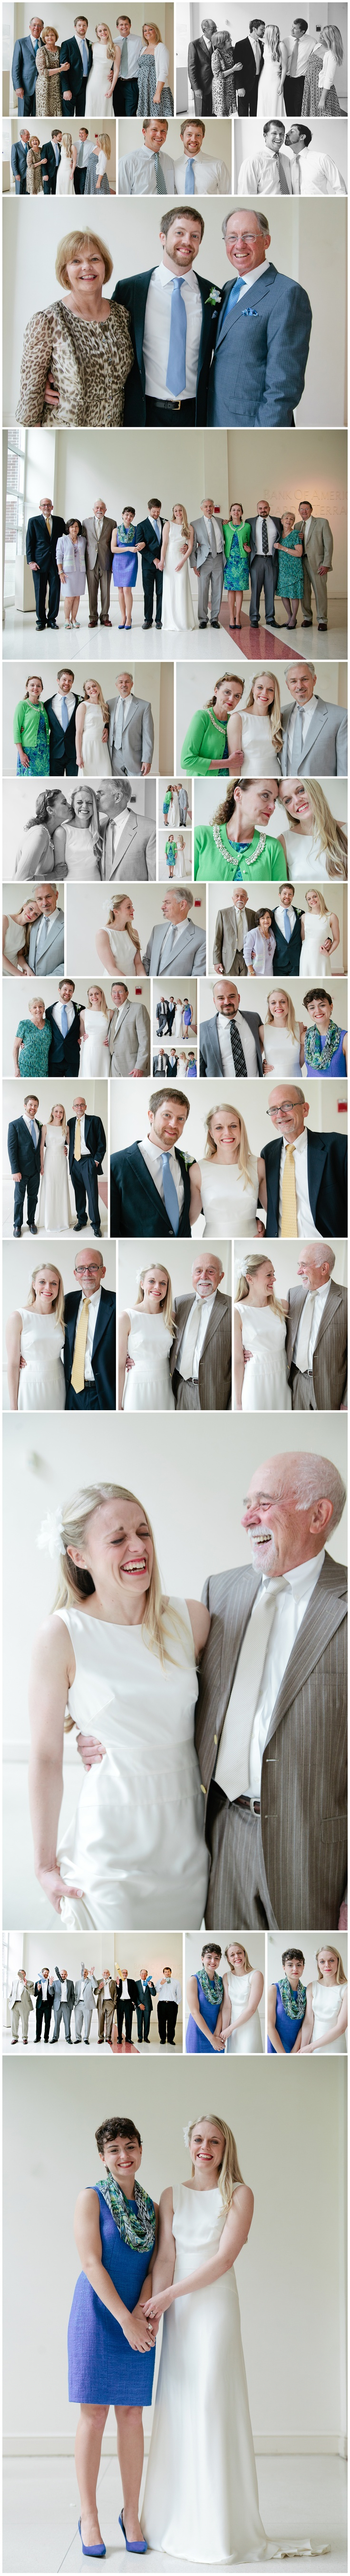 Wedding family portraits by Micah Hewett Images